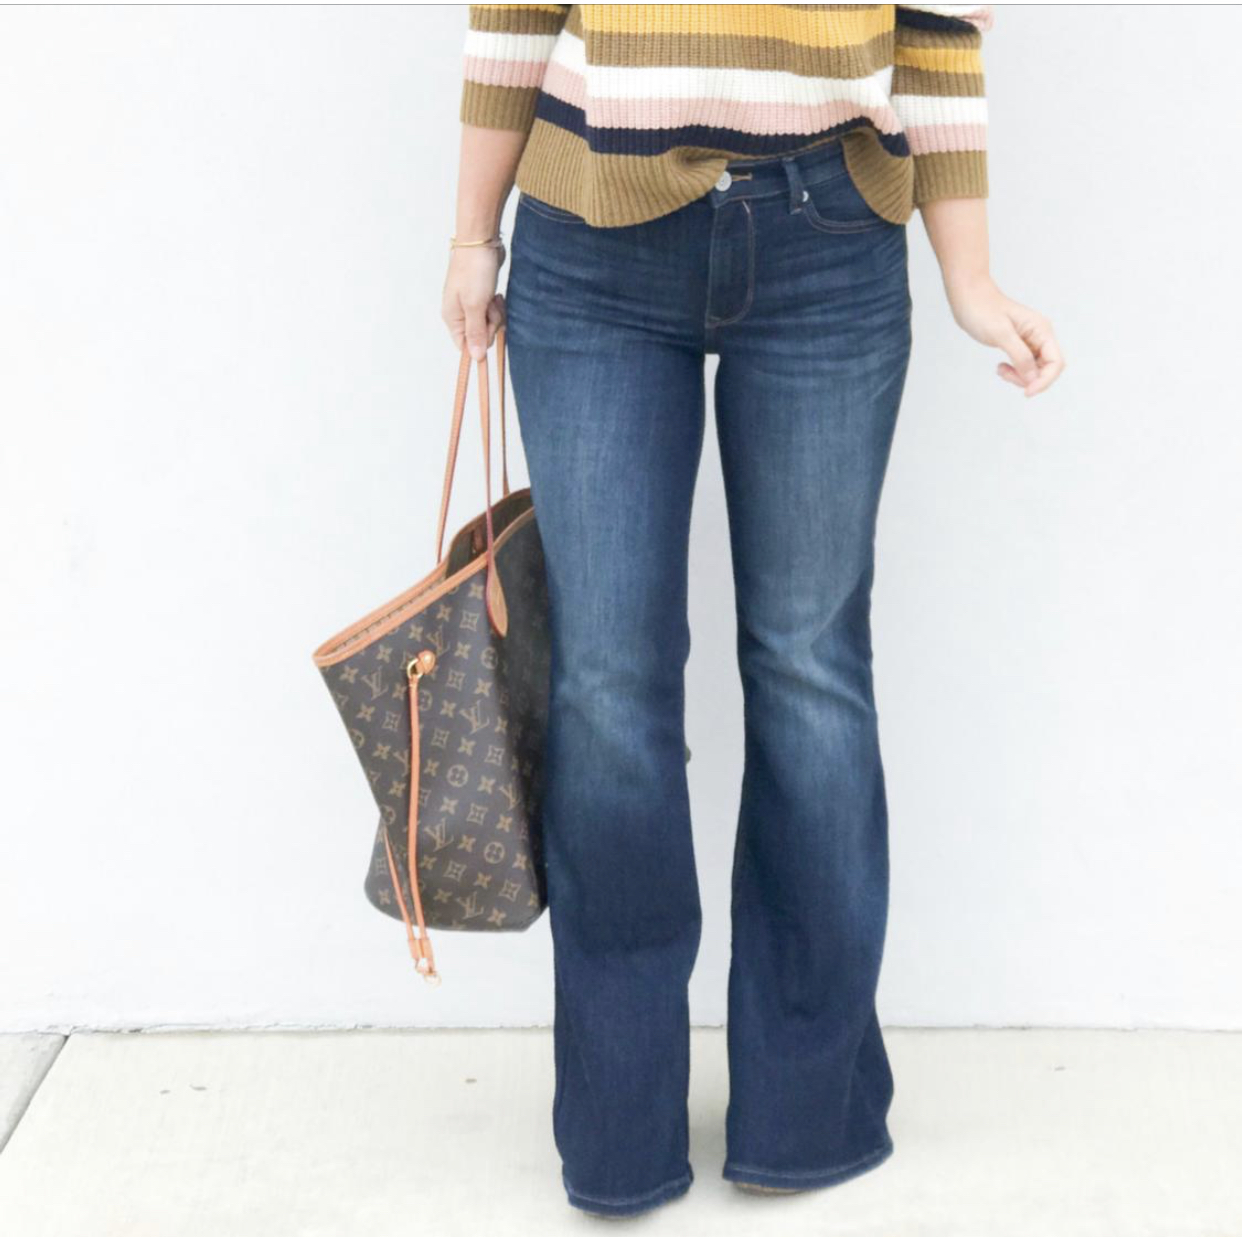 Bell Flares, How to Style Flare Jeans, Flares, Bell Bottoms, Express Flares, Wide Leg Jeans, https://rstyle.me/n/dbr5gxccvt7